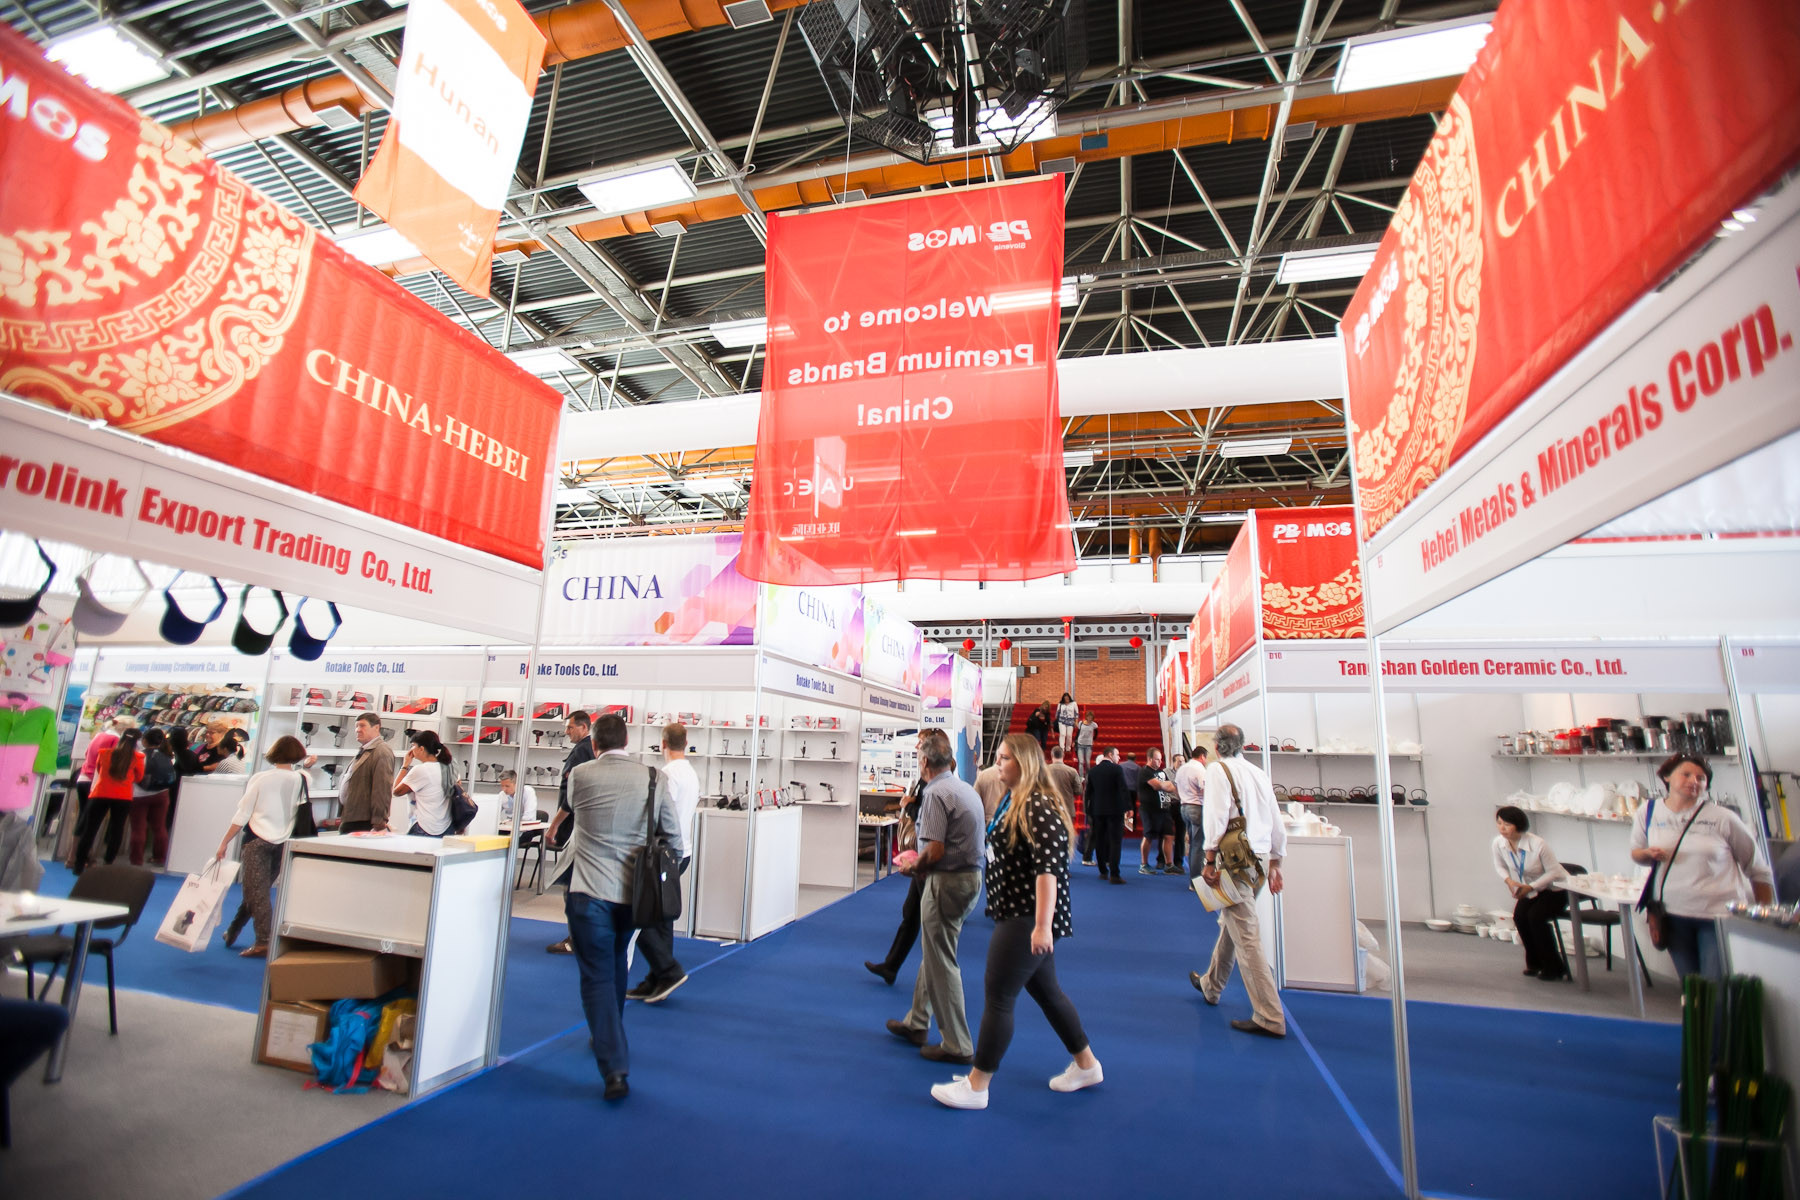 China is presenting its brands in an entire hall, the largest representation of a foreign country at the 48th International Trade Fair in Celje, Slovenia, Sep. 8, 2015.